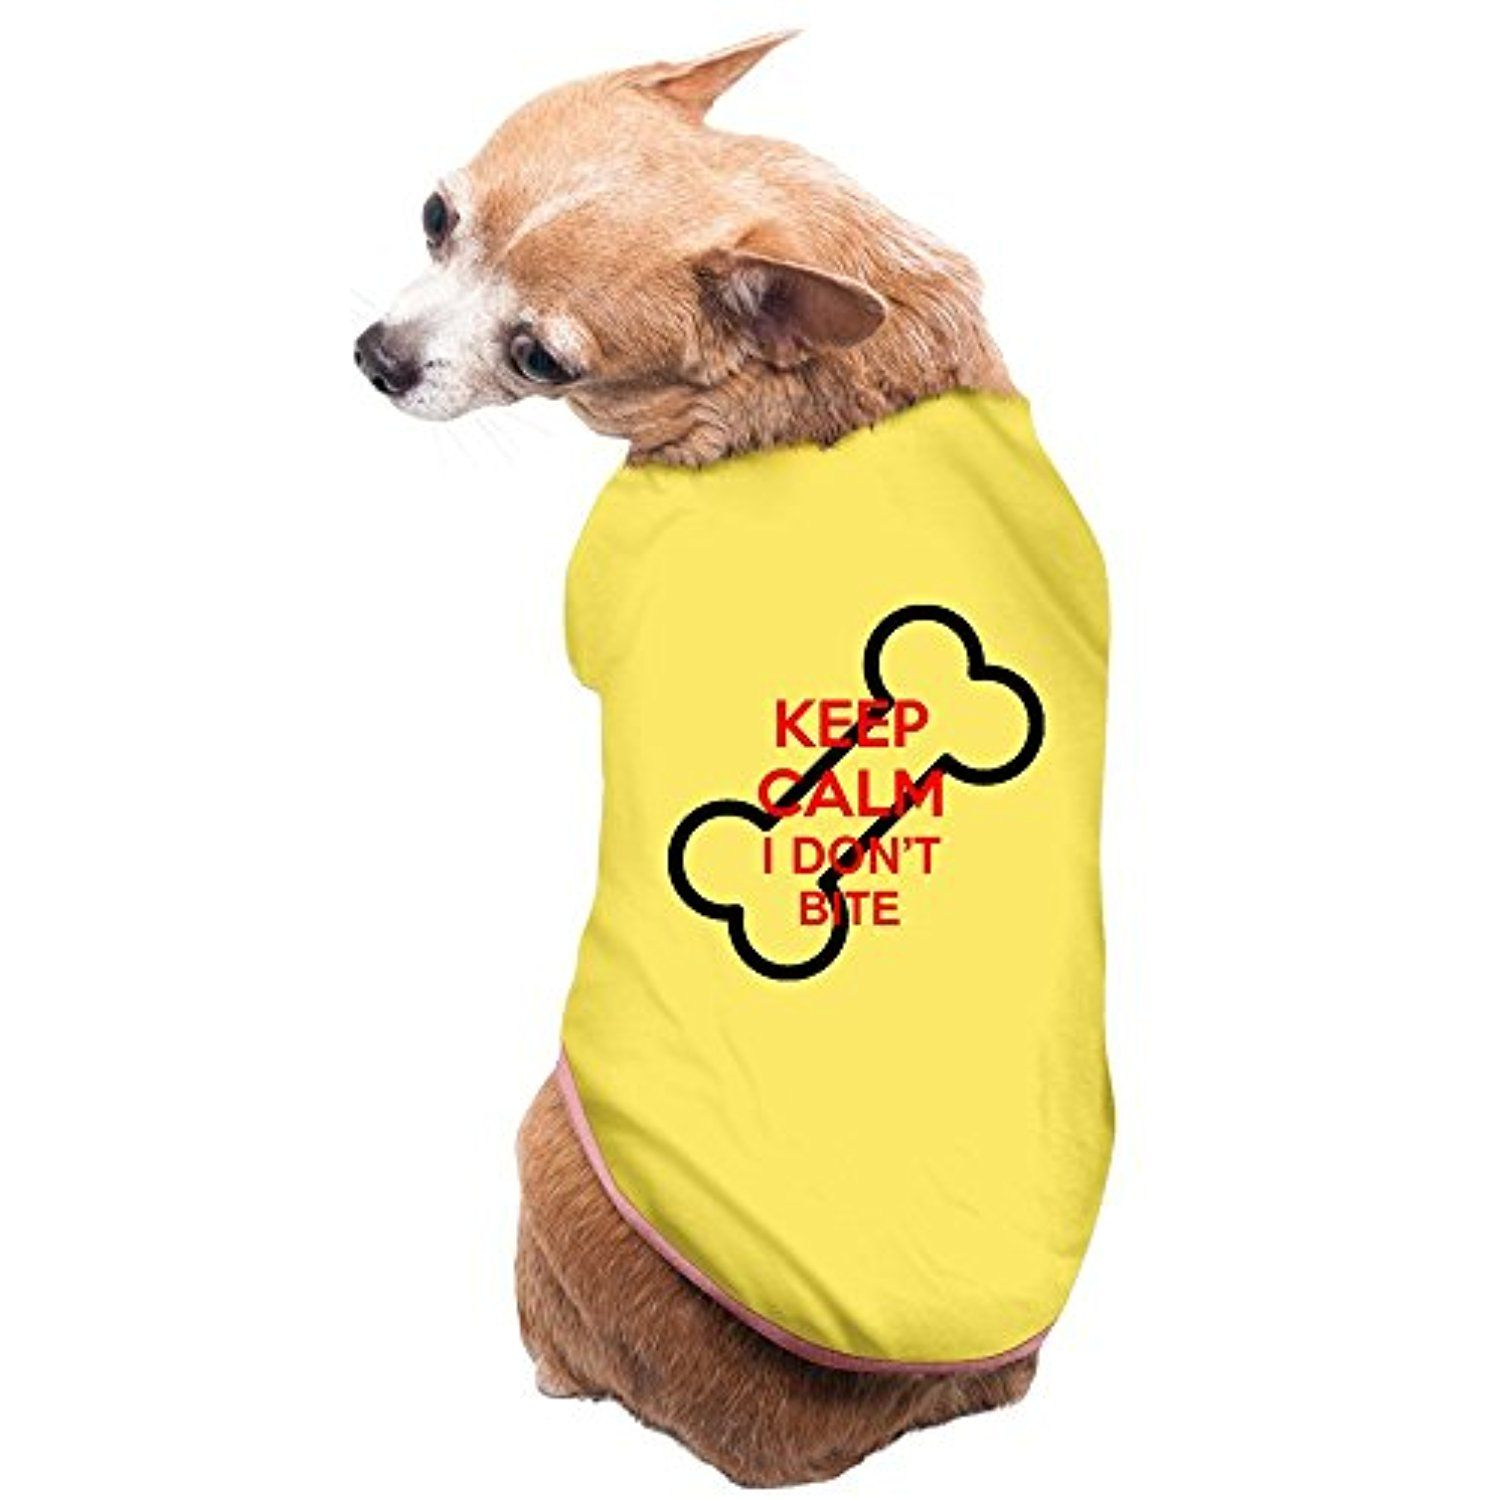 Aipyep slim fit keep calm l dont bite puppies and dog